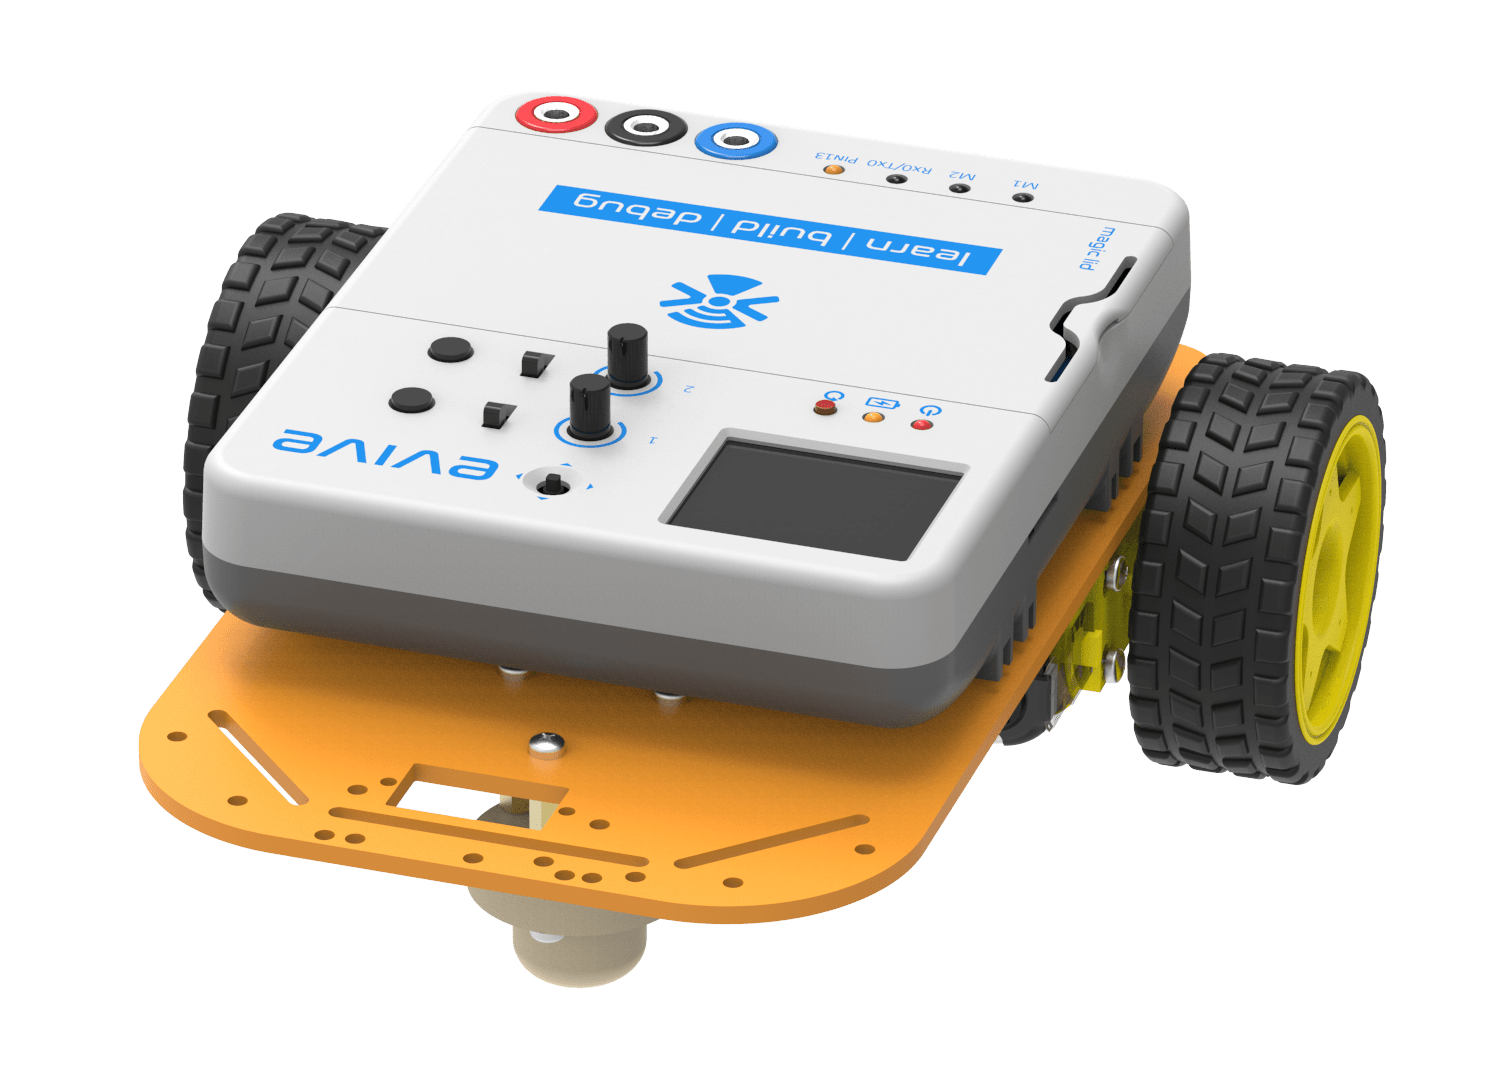 How to make a DIY Joystick Controlled Mobile Robot using arduino